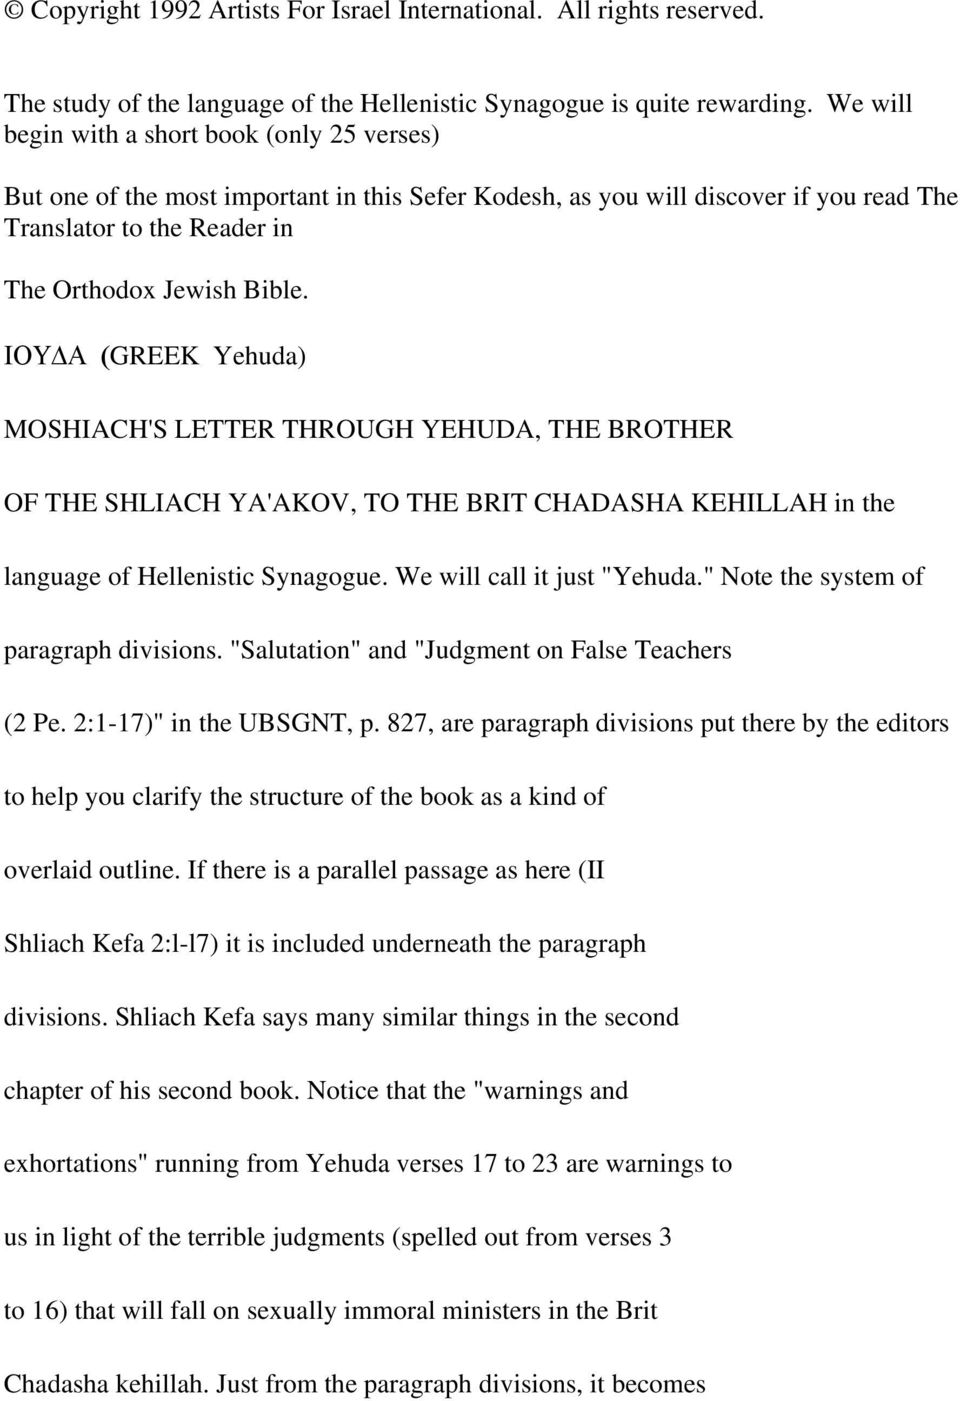 "ΙΟΥ Α (GREEK Yehuda) MOSHIACH'S LETTER THROUGH YEHUDA, THE BROTHER OF THE SHLIACH YA'AKOV, TO THE BRIT CHADASHA KEHILLAH in the language of Hellenistic Synagogue. We will call it just ""Yehuda."